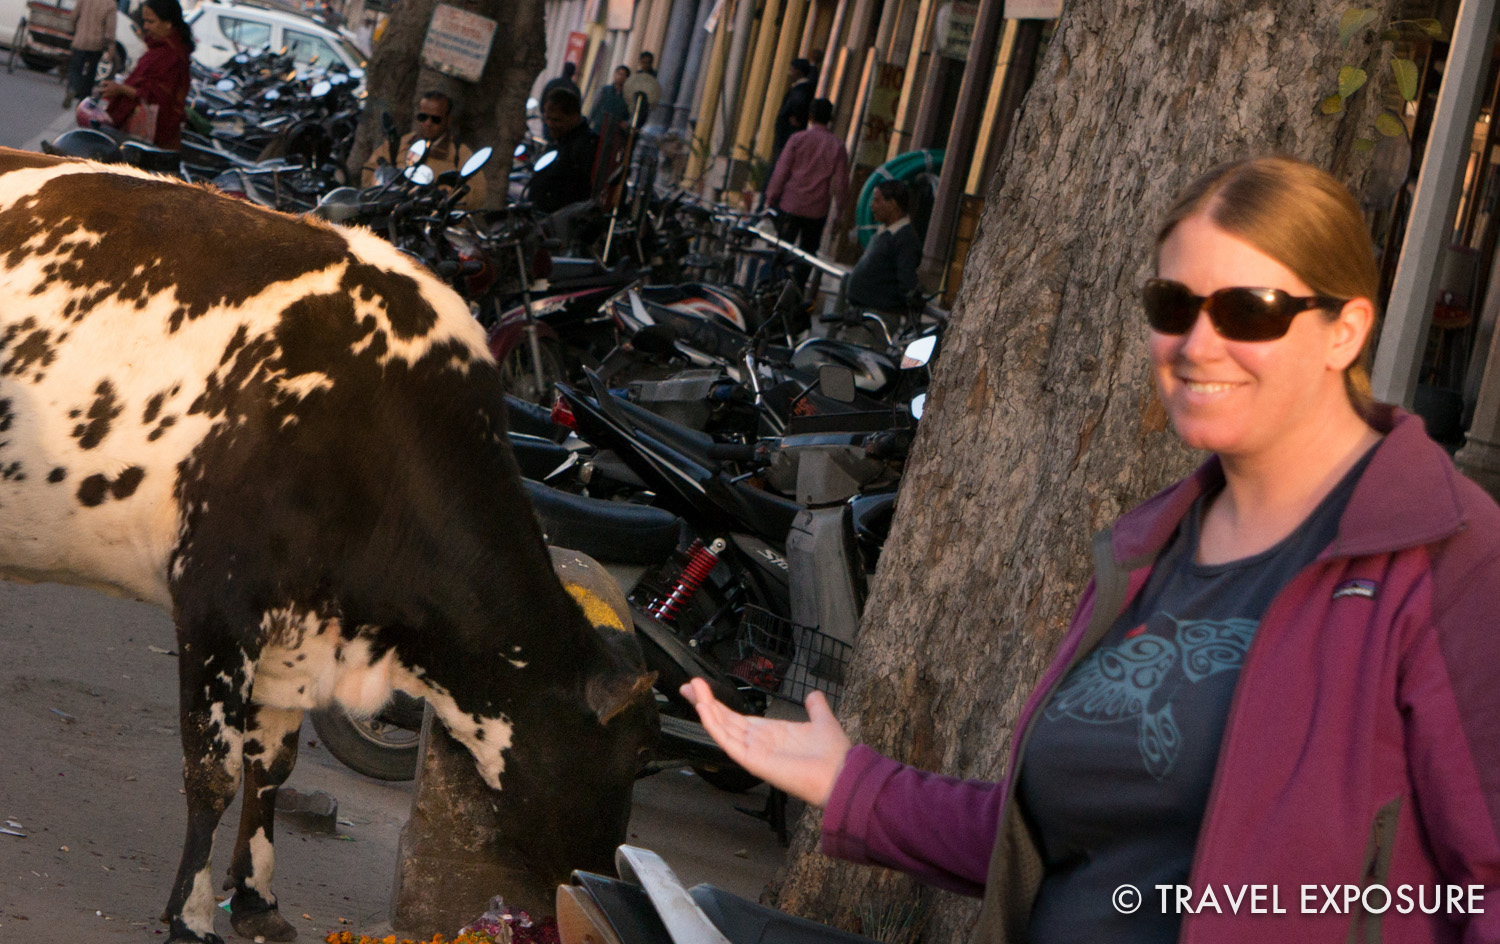 This cow actually moo-ed at me!